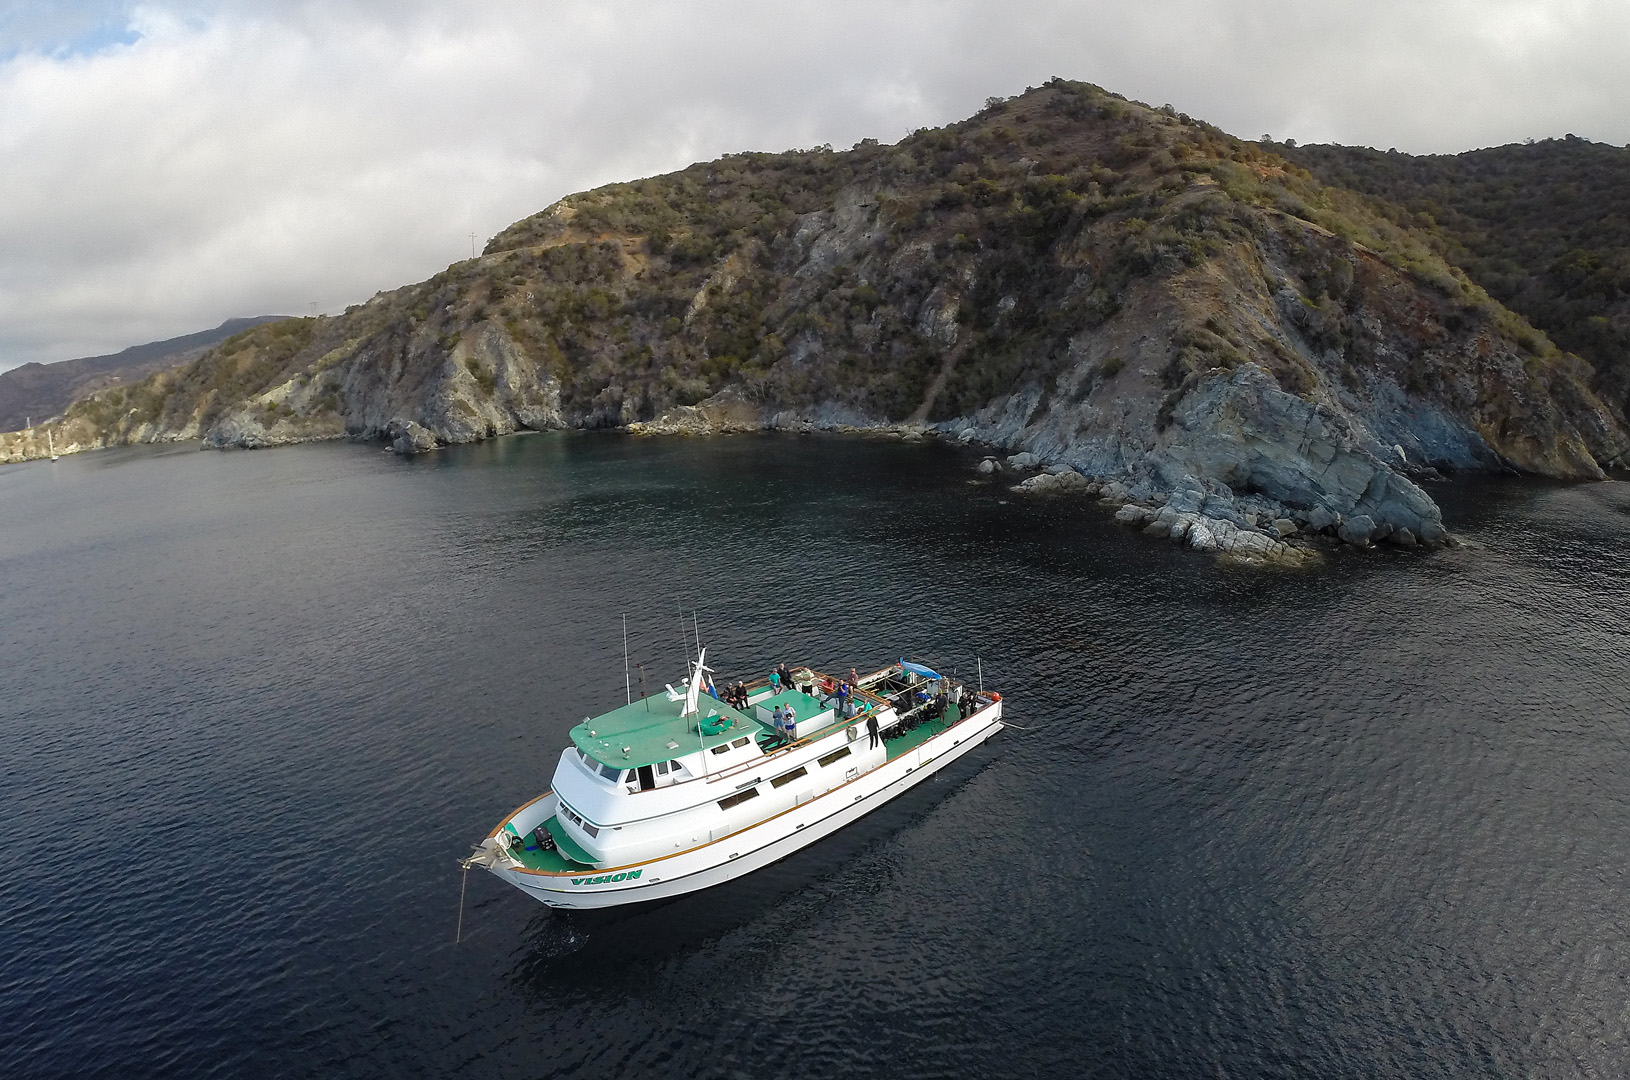 dive trip boat aerial MV Vision sister ship of MV Conception of 2019 deadly fire in California.jpg